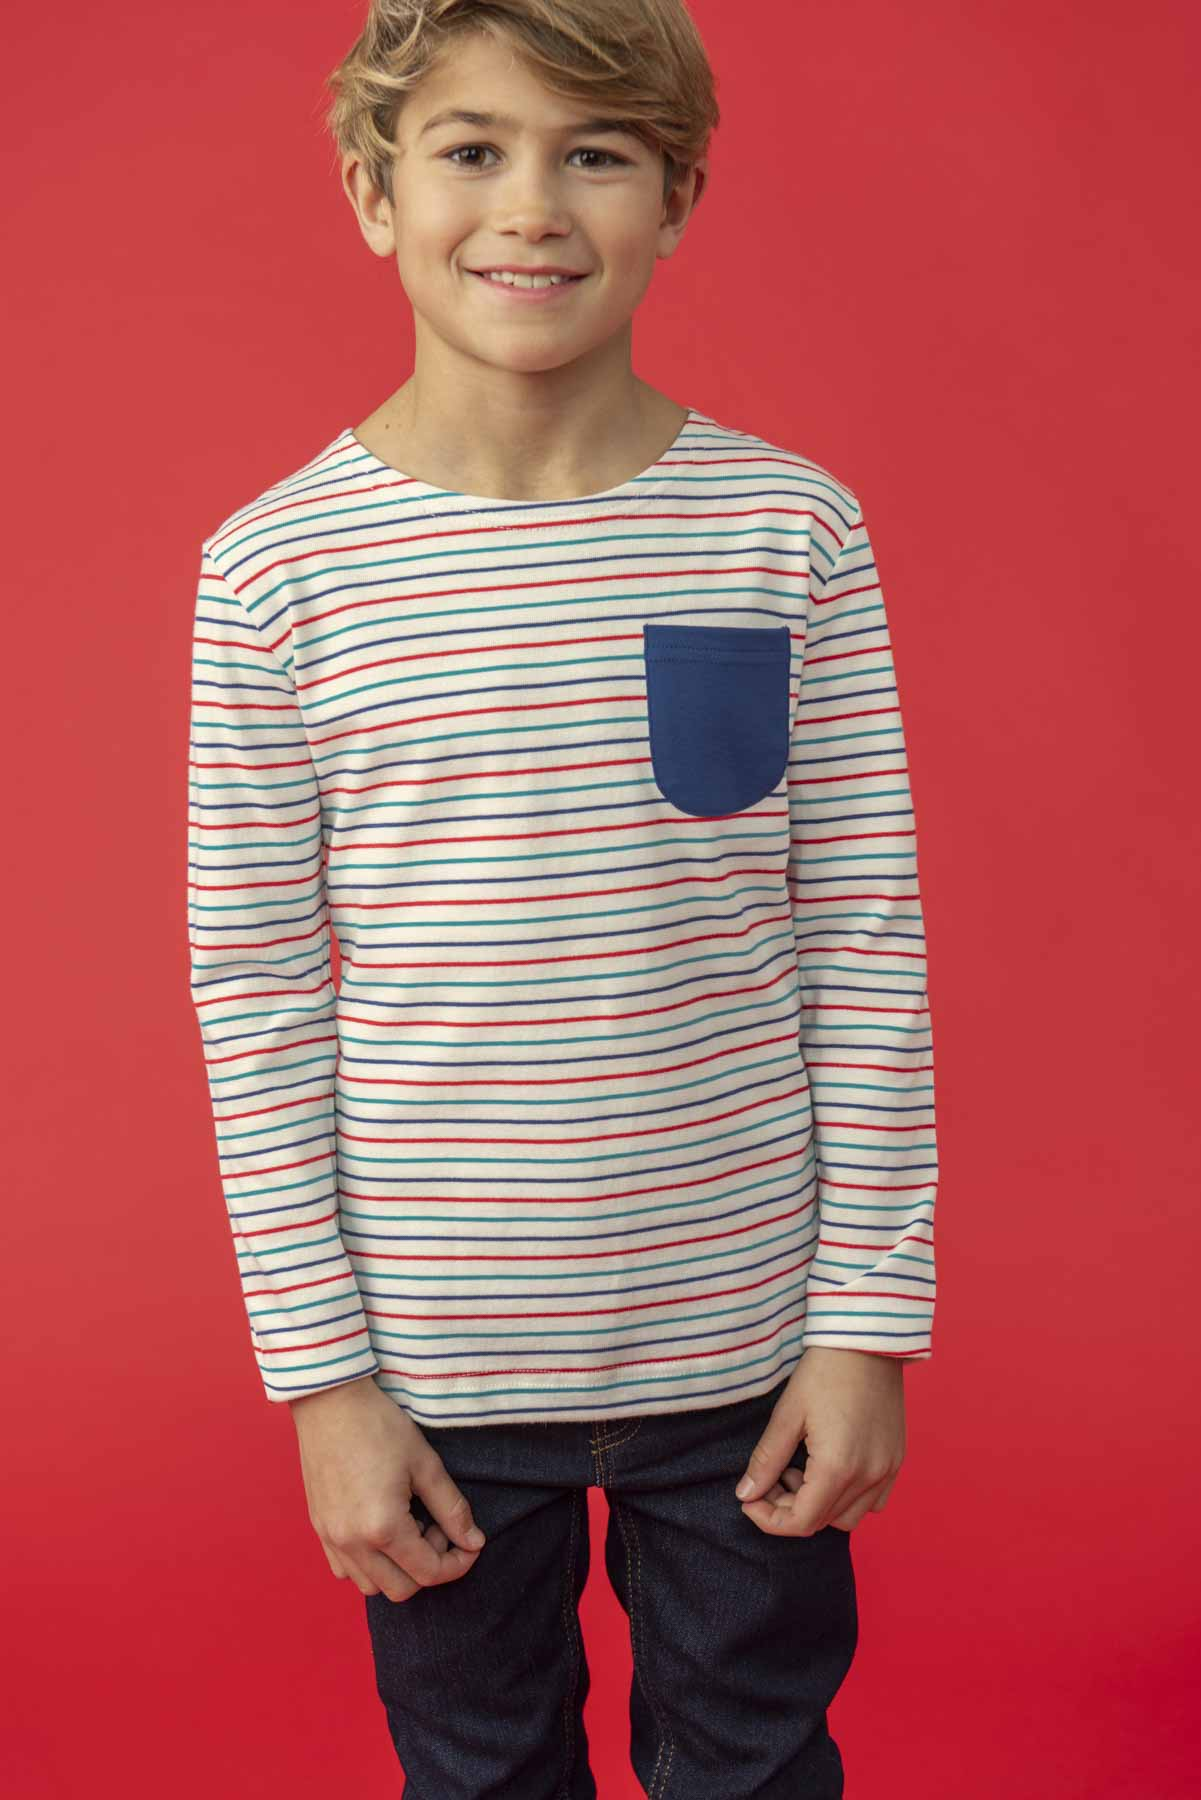 Lighthouse Noah - boys Long Sleeve Top - Multi-stripe